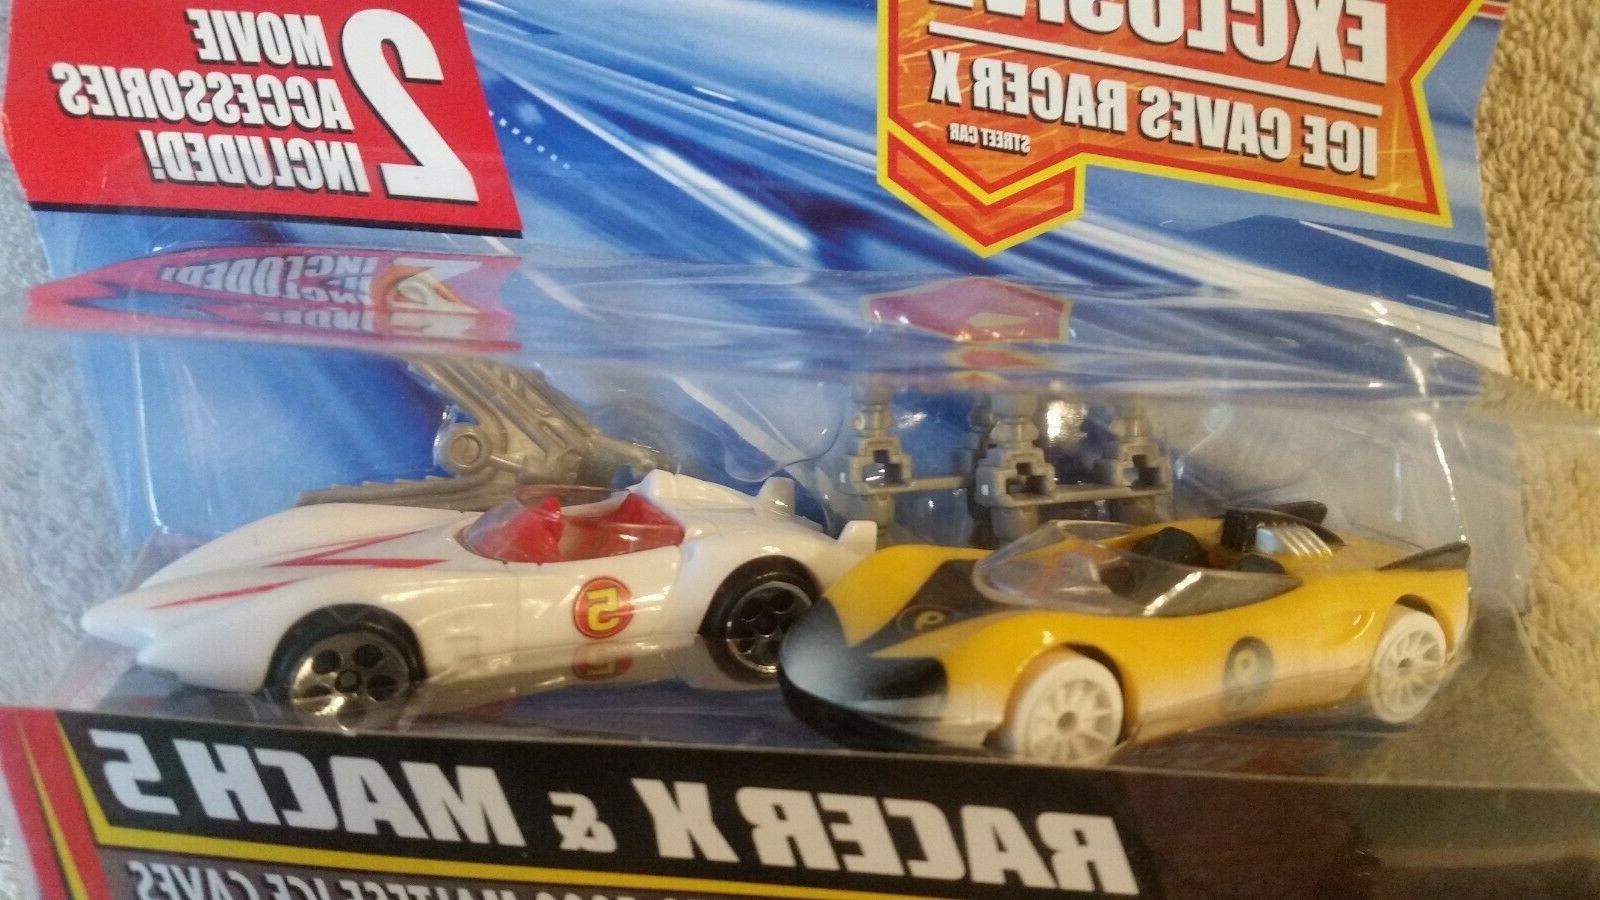 Hot Wheels Racer Racer X Mach 5 2 set with accessories